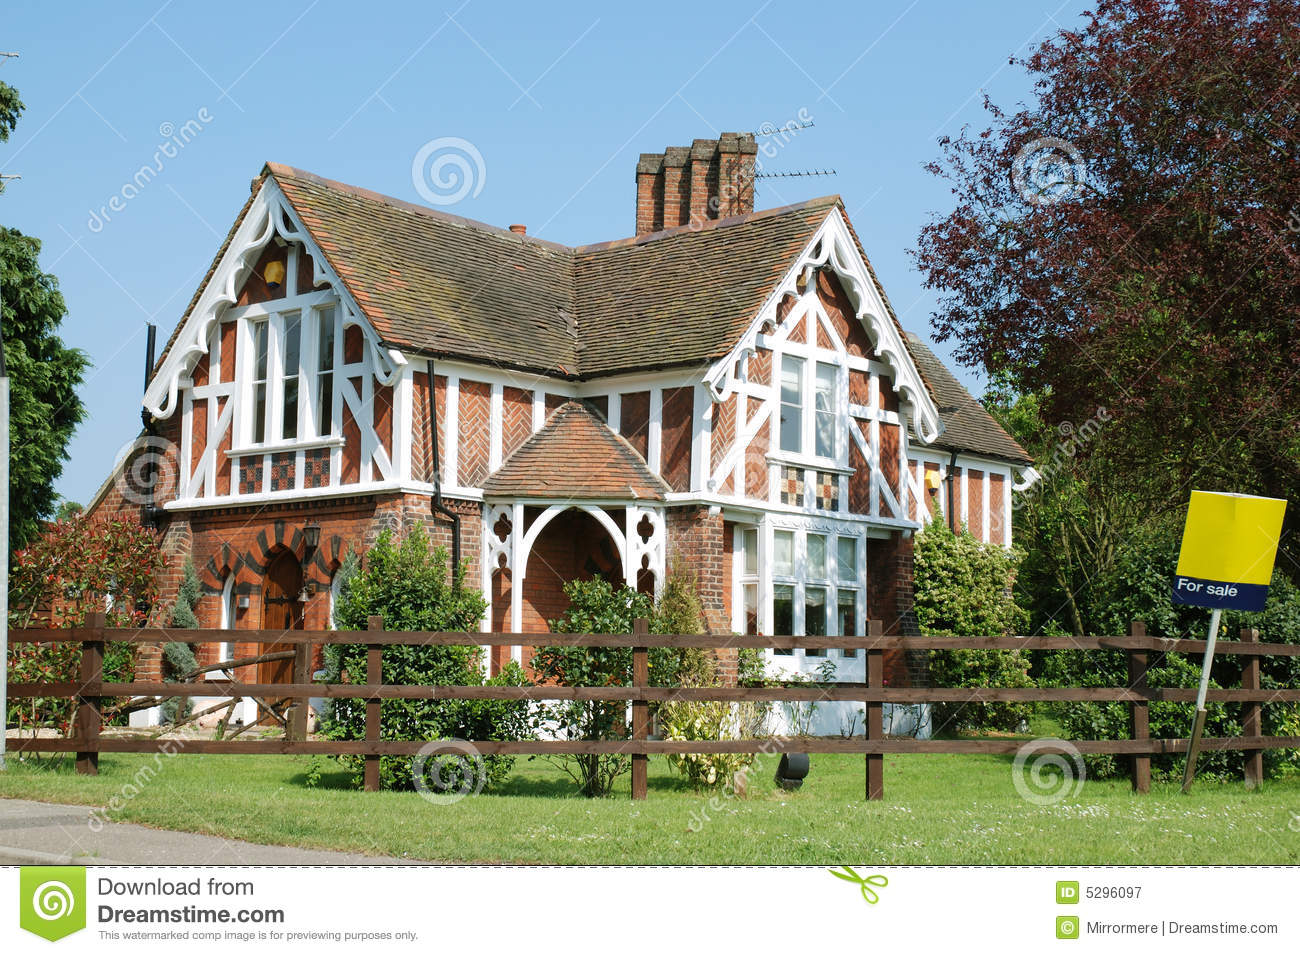 old house for sale stock image image of redbrick architecture